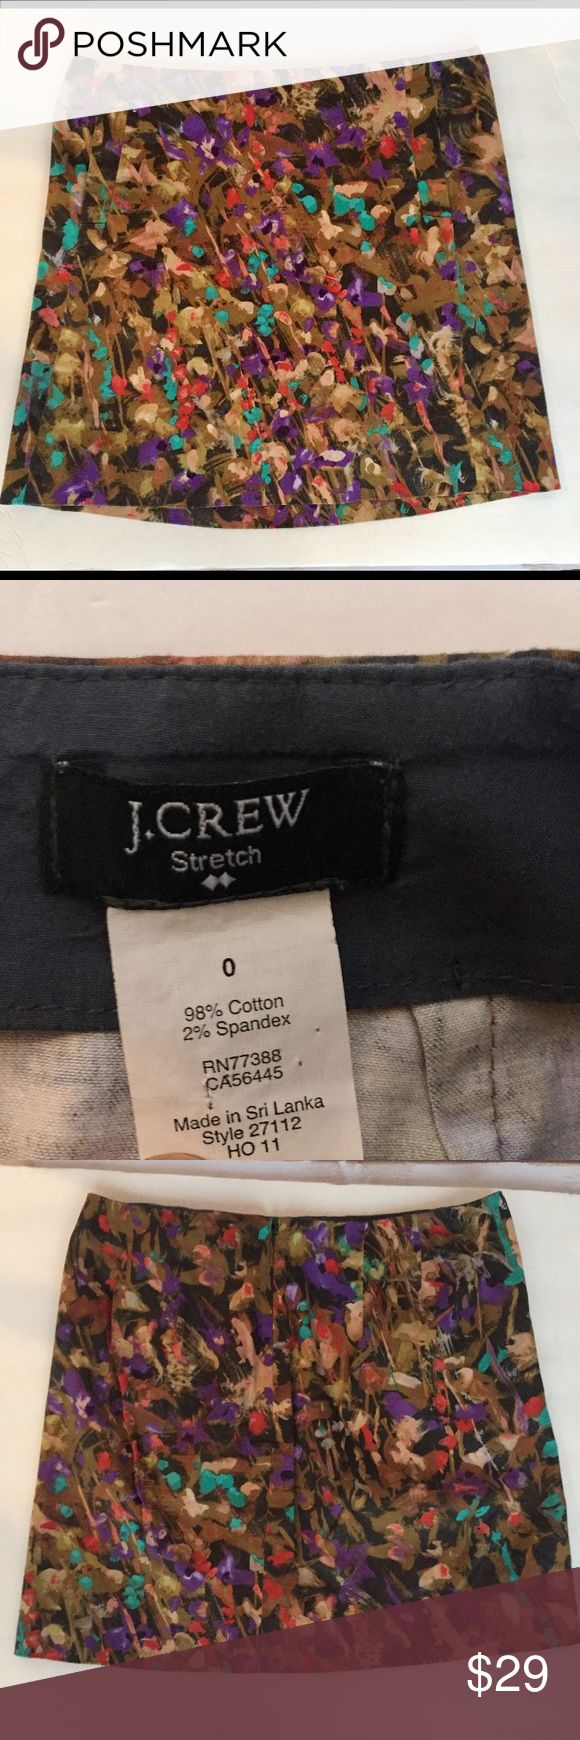 """J.CREW Brush Stroke Stretch Pencil Skirt - 0 This J. CREW Multi Color Brush Stroke Stretch Pencil Skirt with Back Zipper  is previously owned in Very Good Condition.  Not Lined.  FEATURES: SIZE - 0 2 Front Pockets - Back Zipper measures @ 6""""  Waist: 14"""" from Side Seam to Side Seam  Full Length: 16"""" down Side Seam J. Crew Skirts Pencil"""